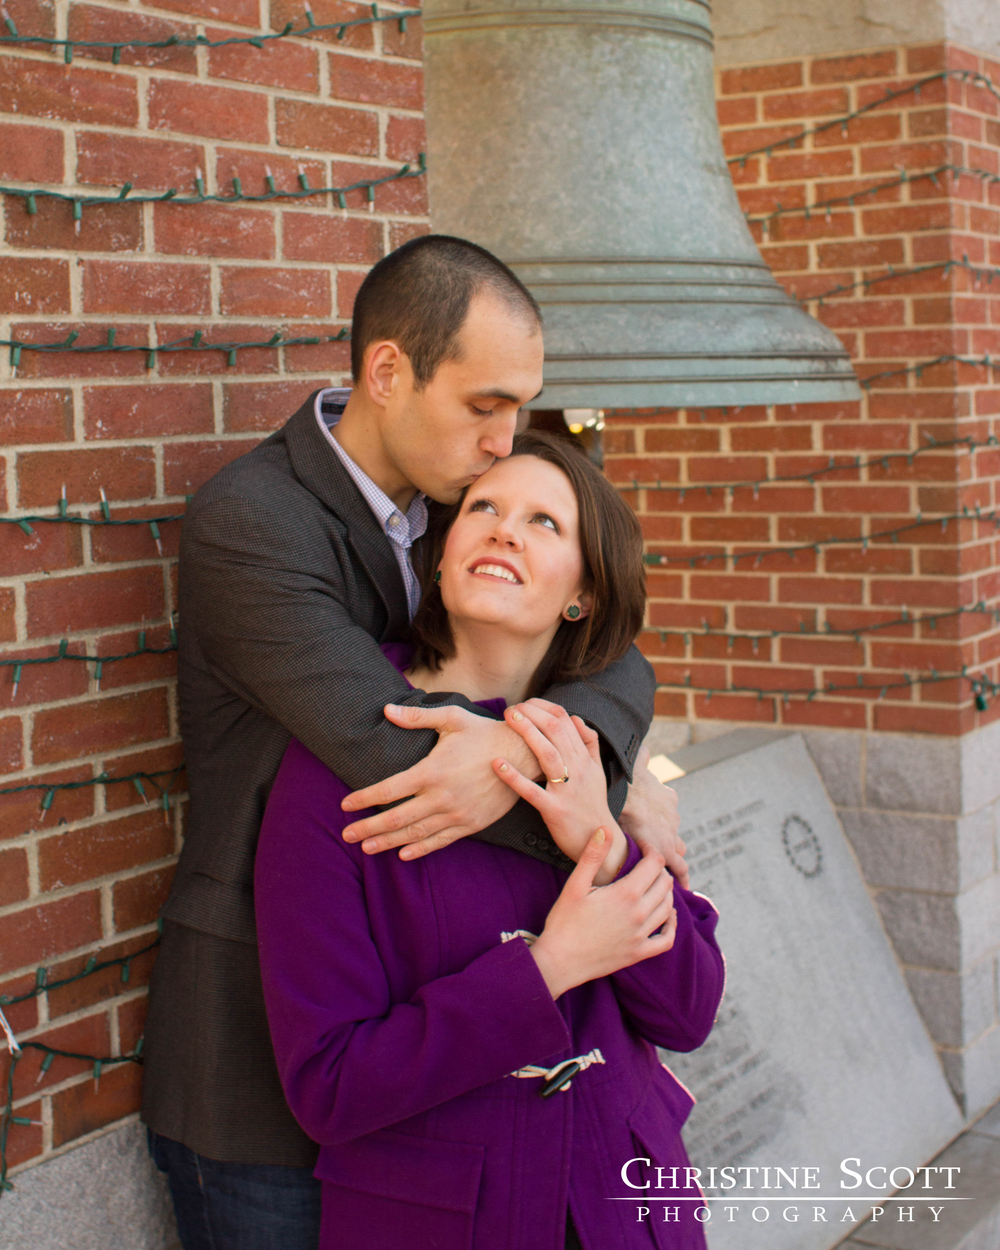 Diana and Andrew Engagement-49.png